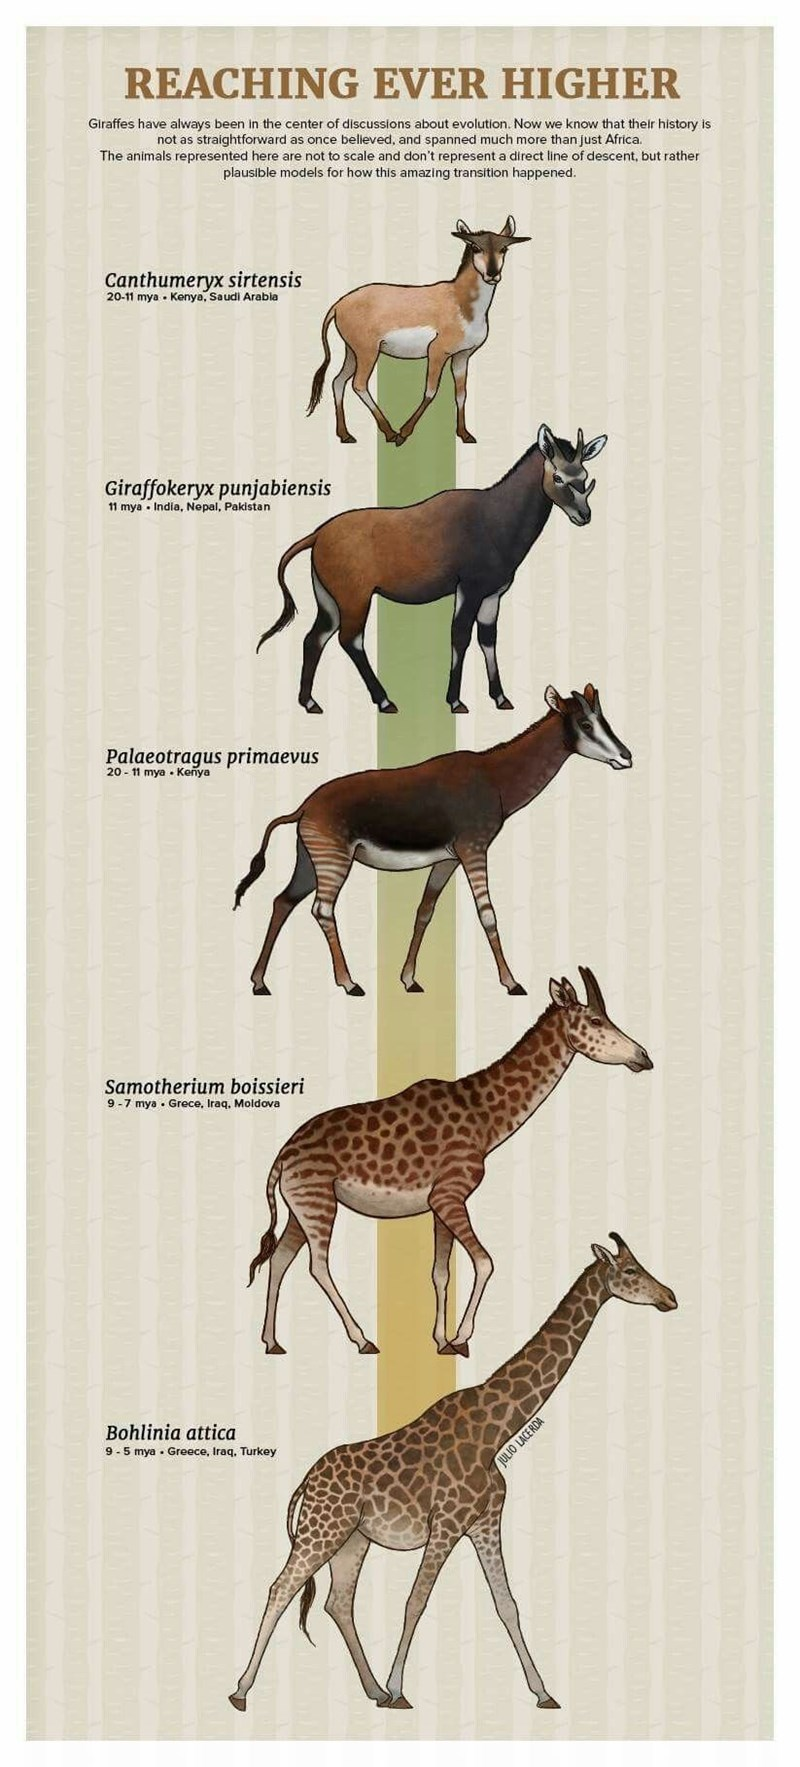 Wildlife - REACHING EVER HIGHER Giraffes have always been in the center of discussions about evolution. Now we know that their history is not as straightforward as once belleved, and spanned much more than just Africa. The animals represented here are not to scale and don't represent a direct line of descent, but rather plausible models for how this amazing transition happened. Canthumeryx sirtensis 20-11 mya Kenya, Saudi Arabia Giraffokeryx punjabiensis 11 mya India, Nepal, Pakistan Palaeotragu